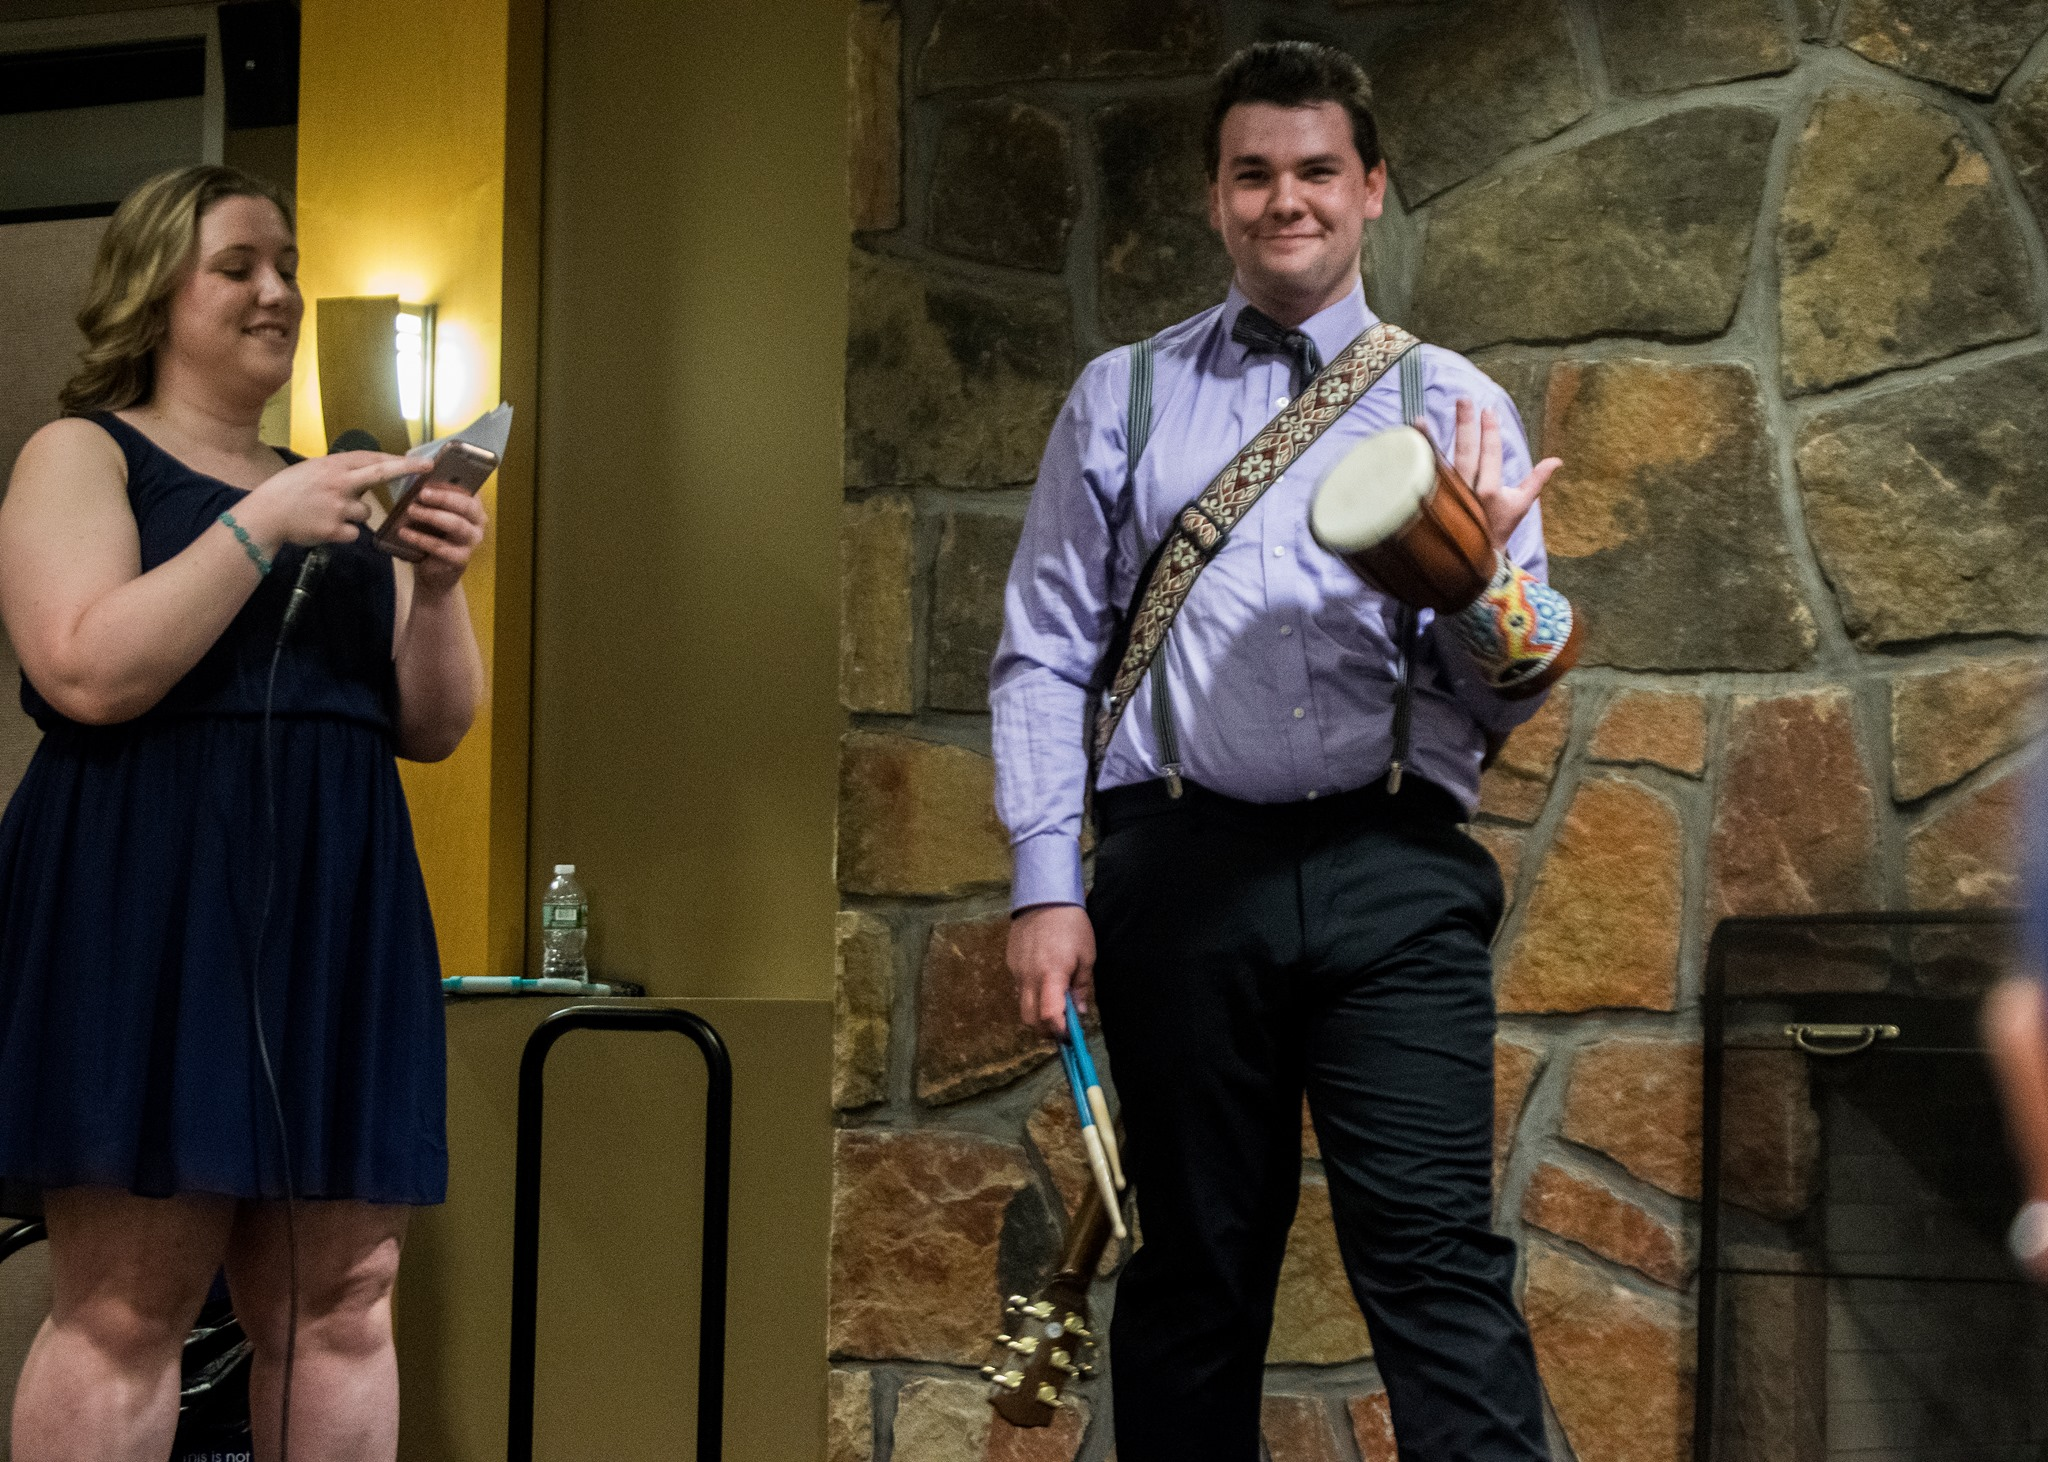 Spencer Cole, a freshman music therapy major, dresses as a musician for the occupational wear competition.